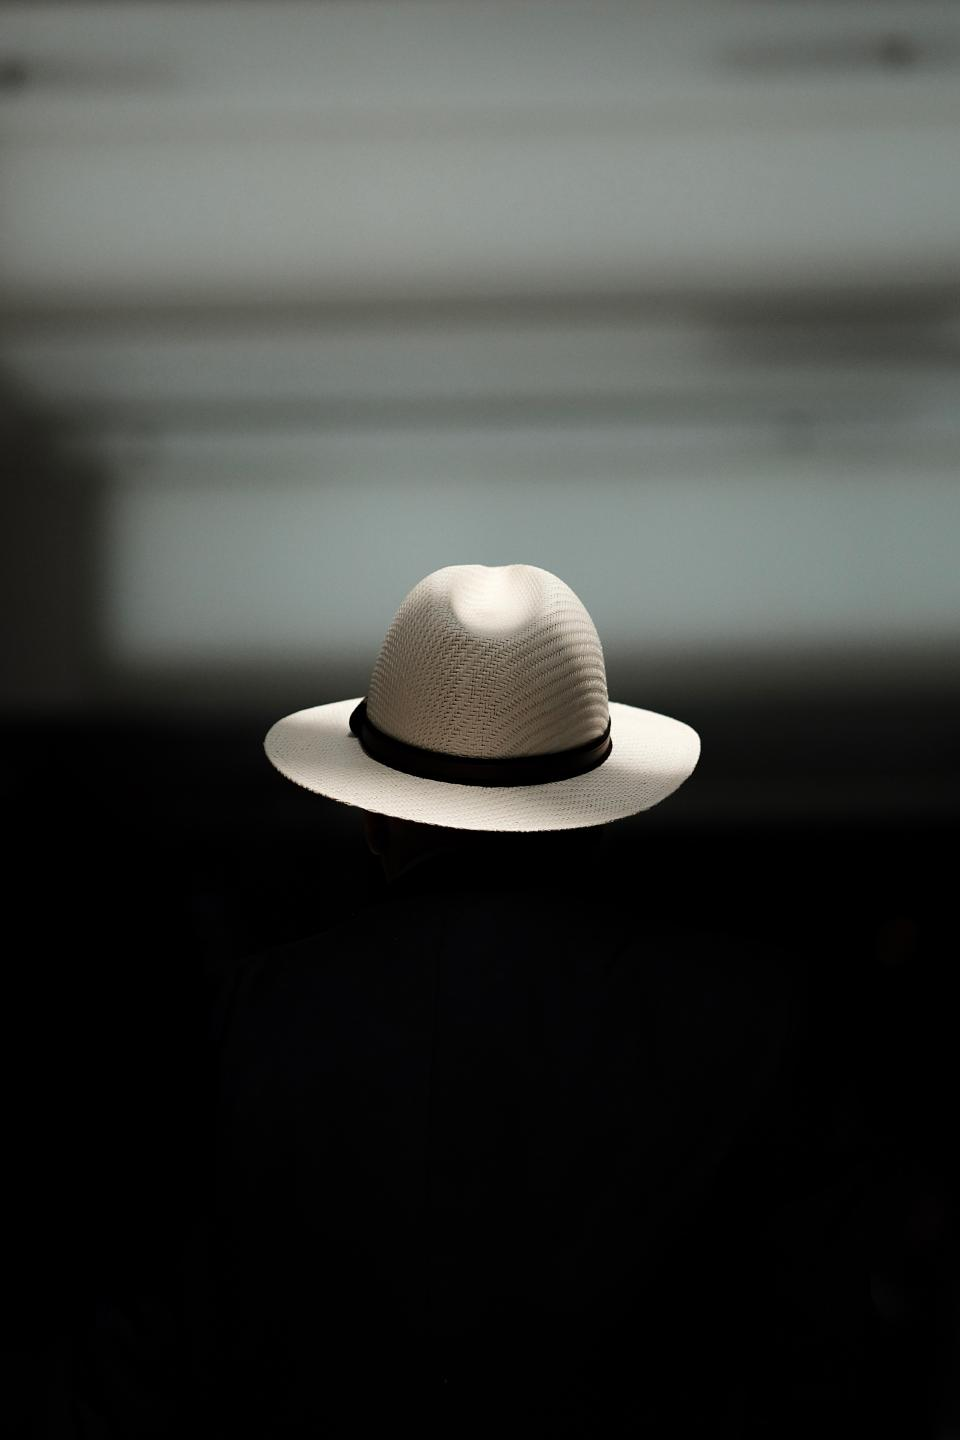 people dark room hat cap